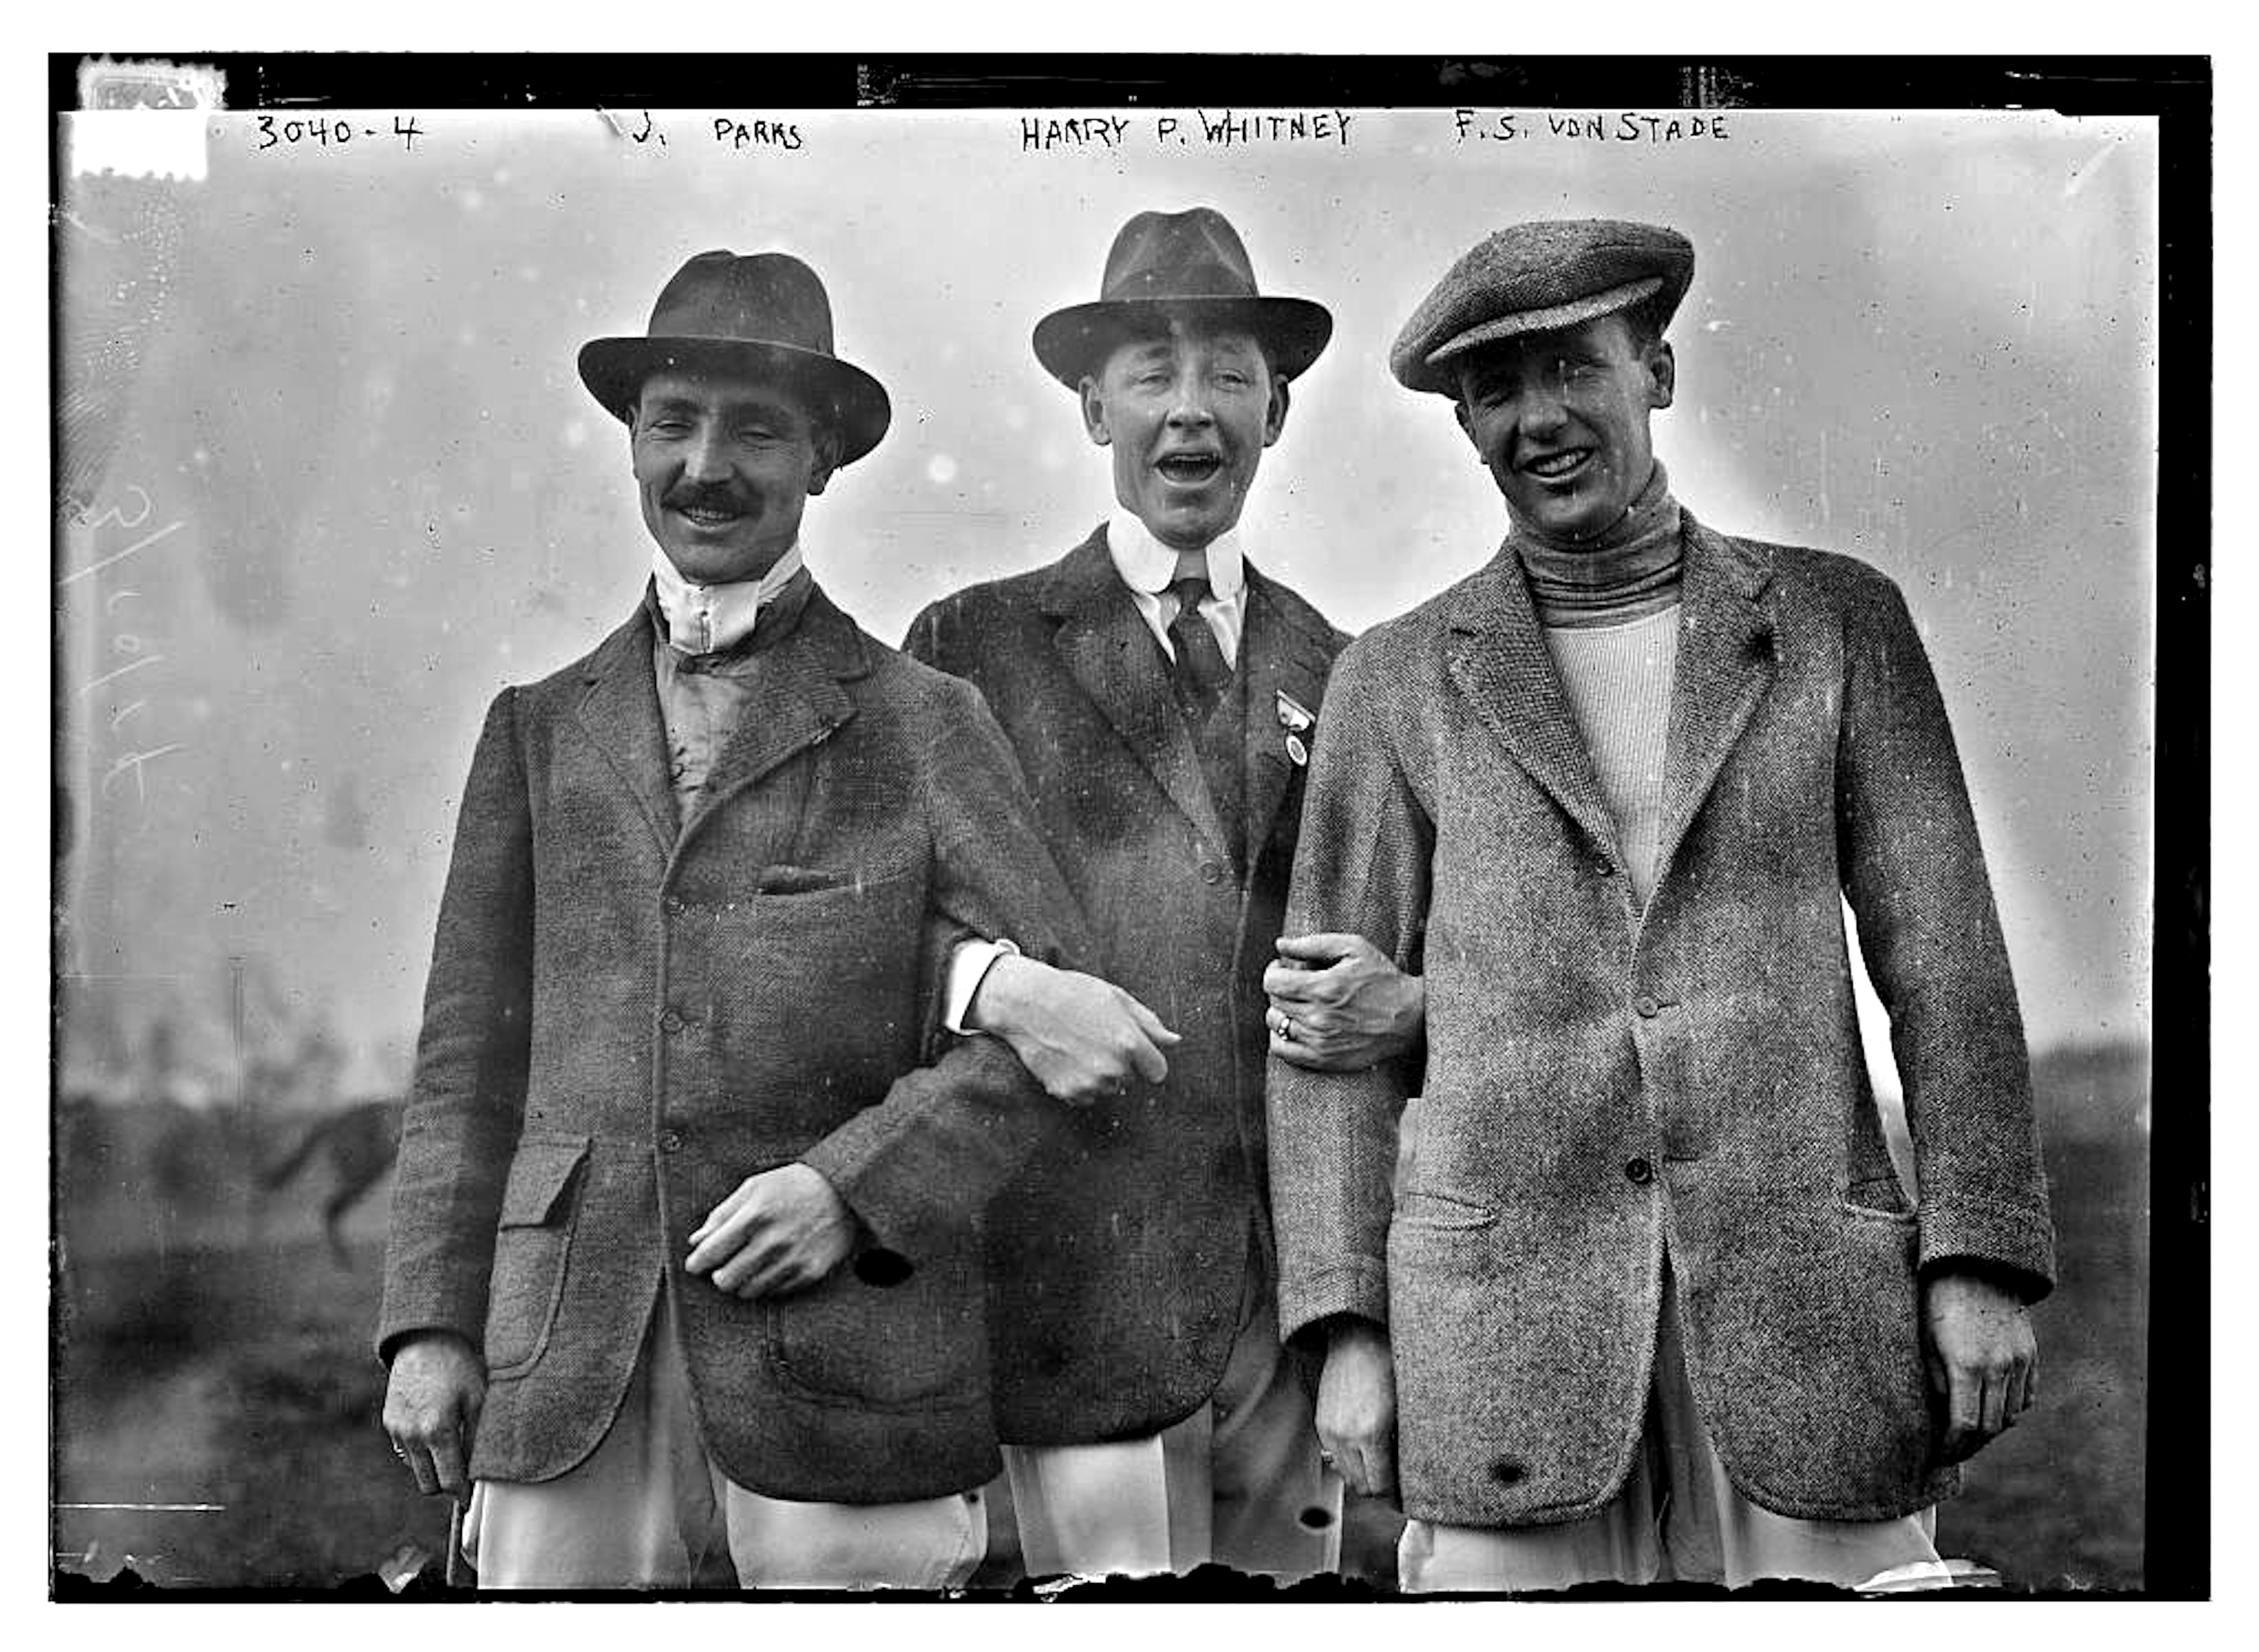 """J. Parks, Harry Payne Whintey, and F. """"Skiddy"""" von Stade, c. 1910 (Library of Congress, Prints & Photographs Division, [LC-DIG-ggbain-15888])"""